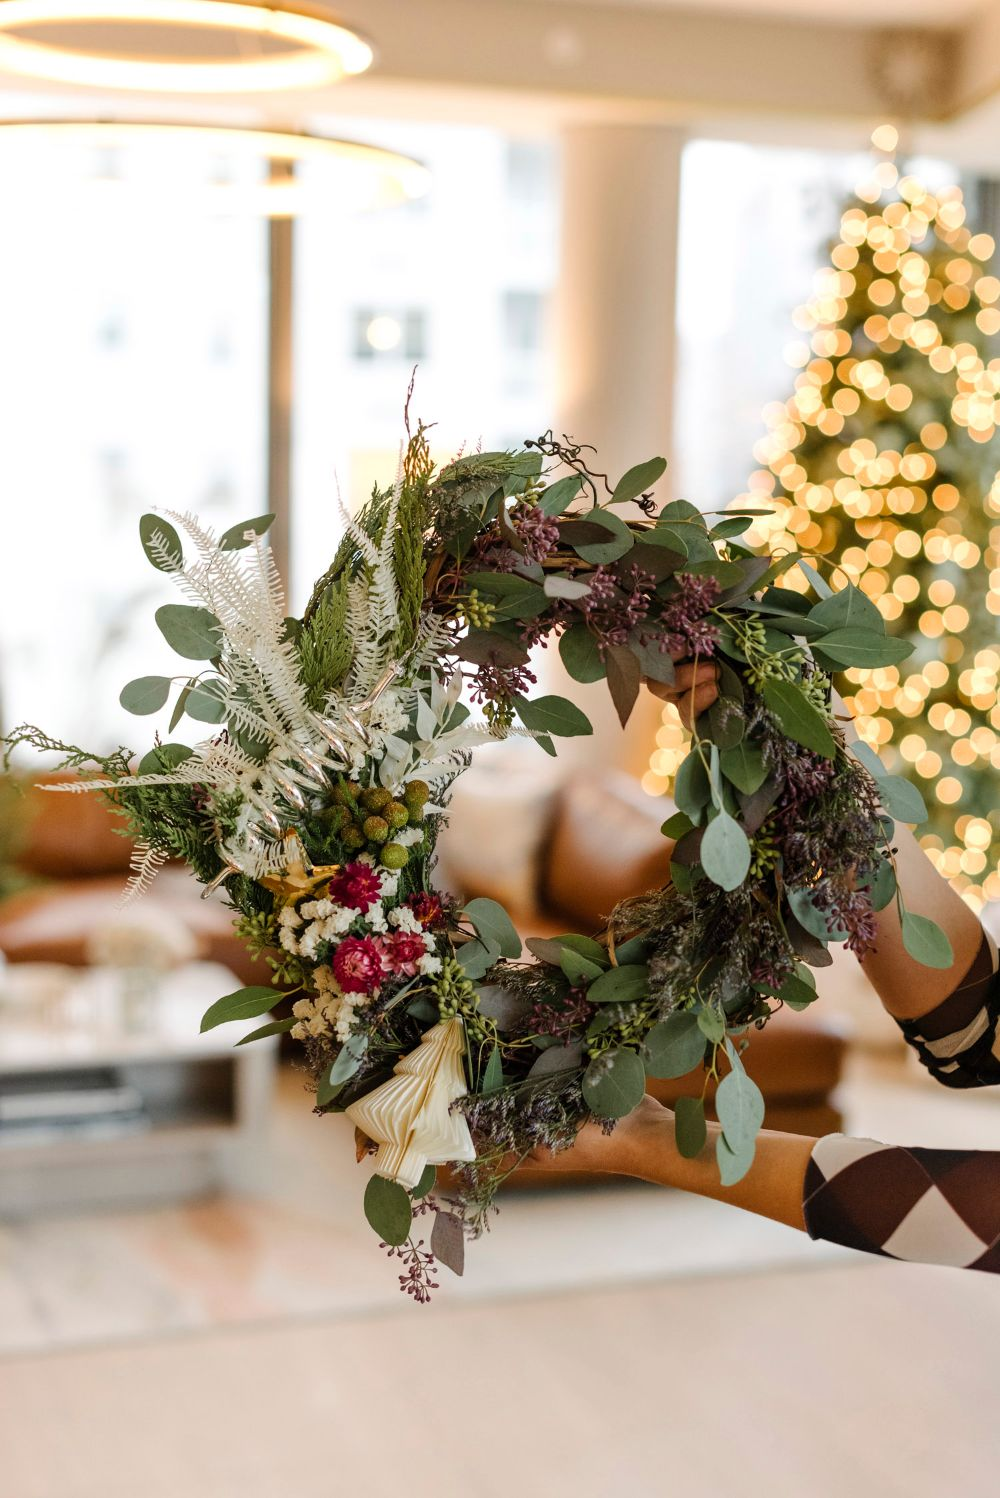 How to Make a Chic DIY Holiday Wreath with Popup Florist - Front + Main